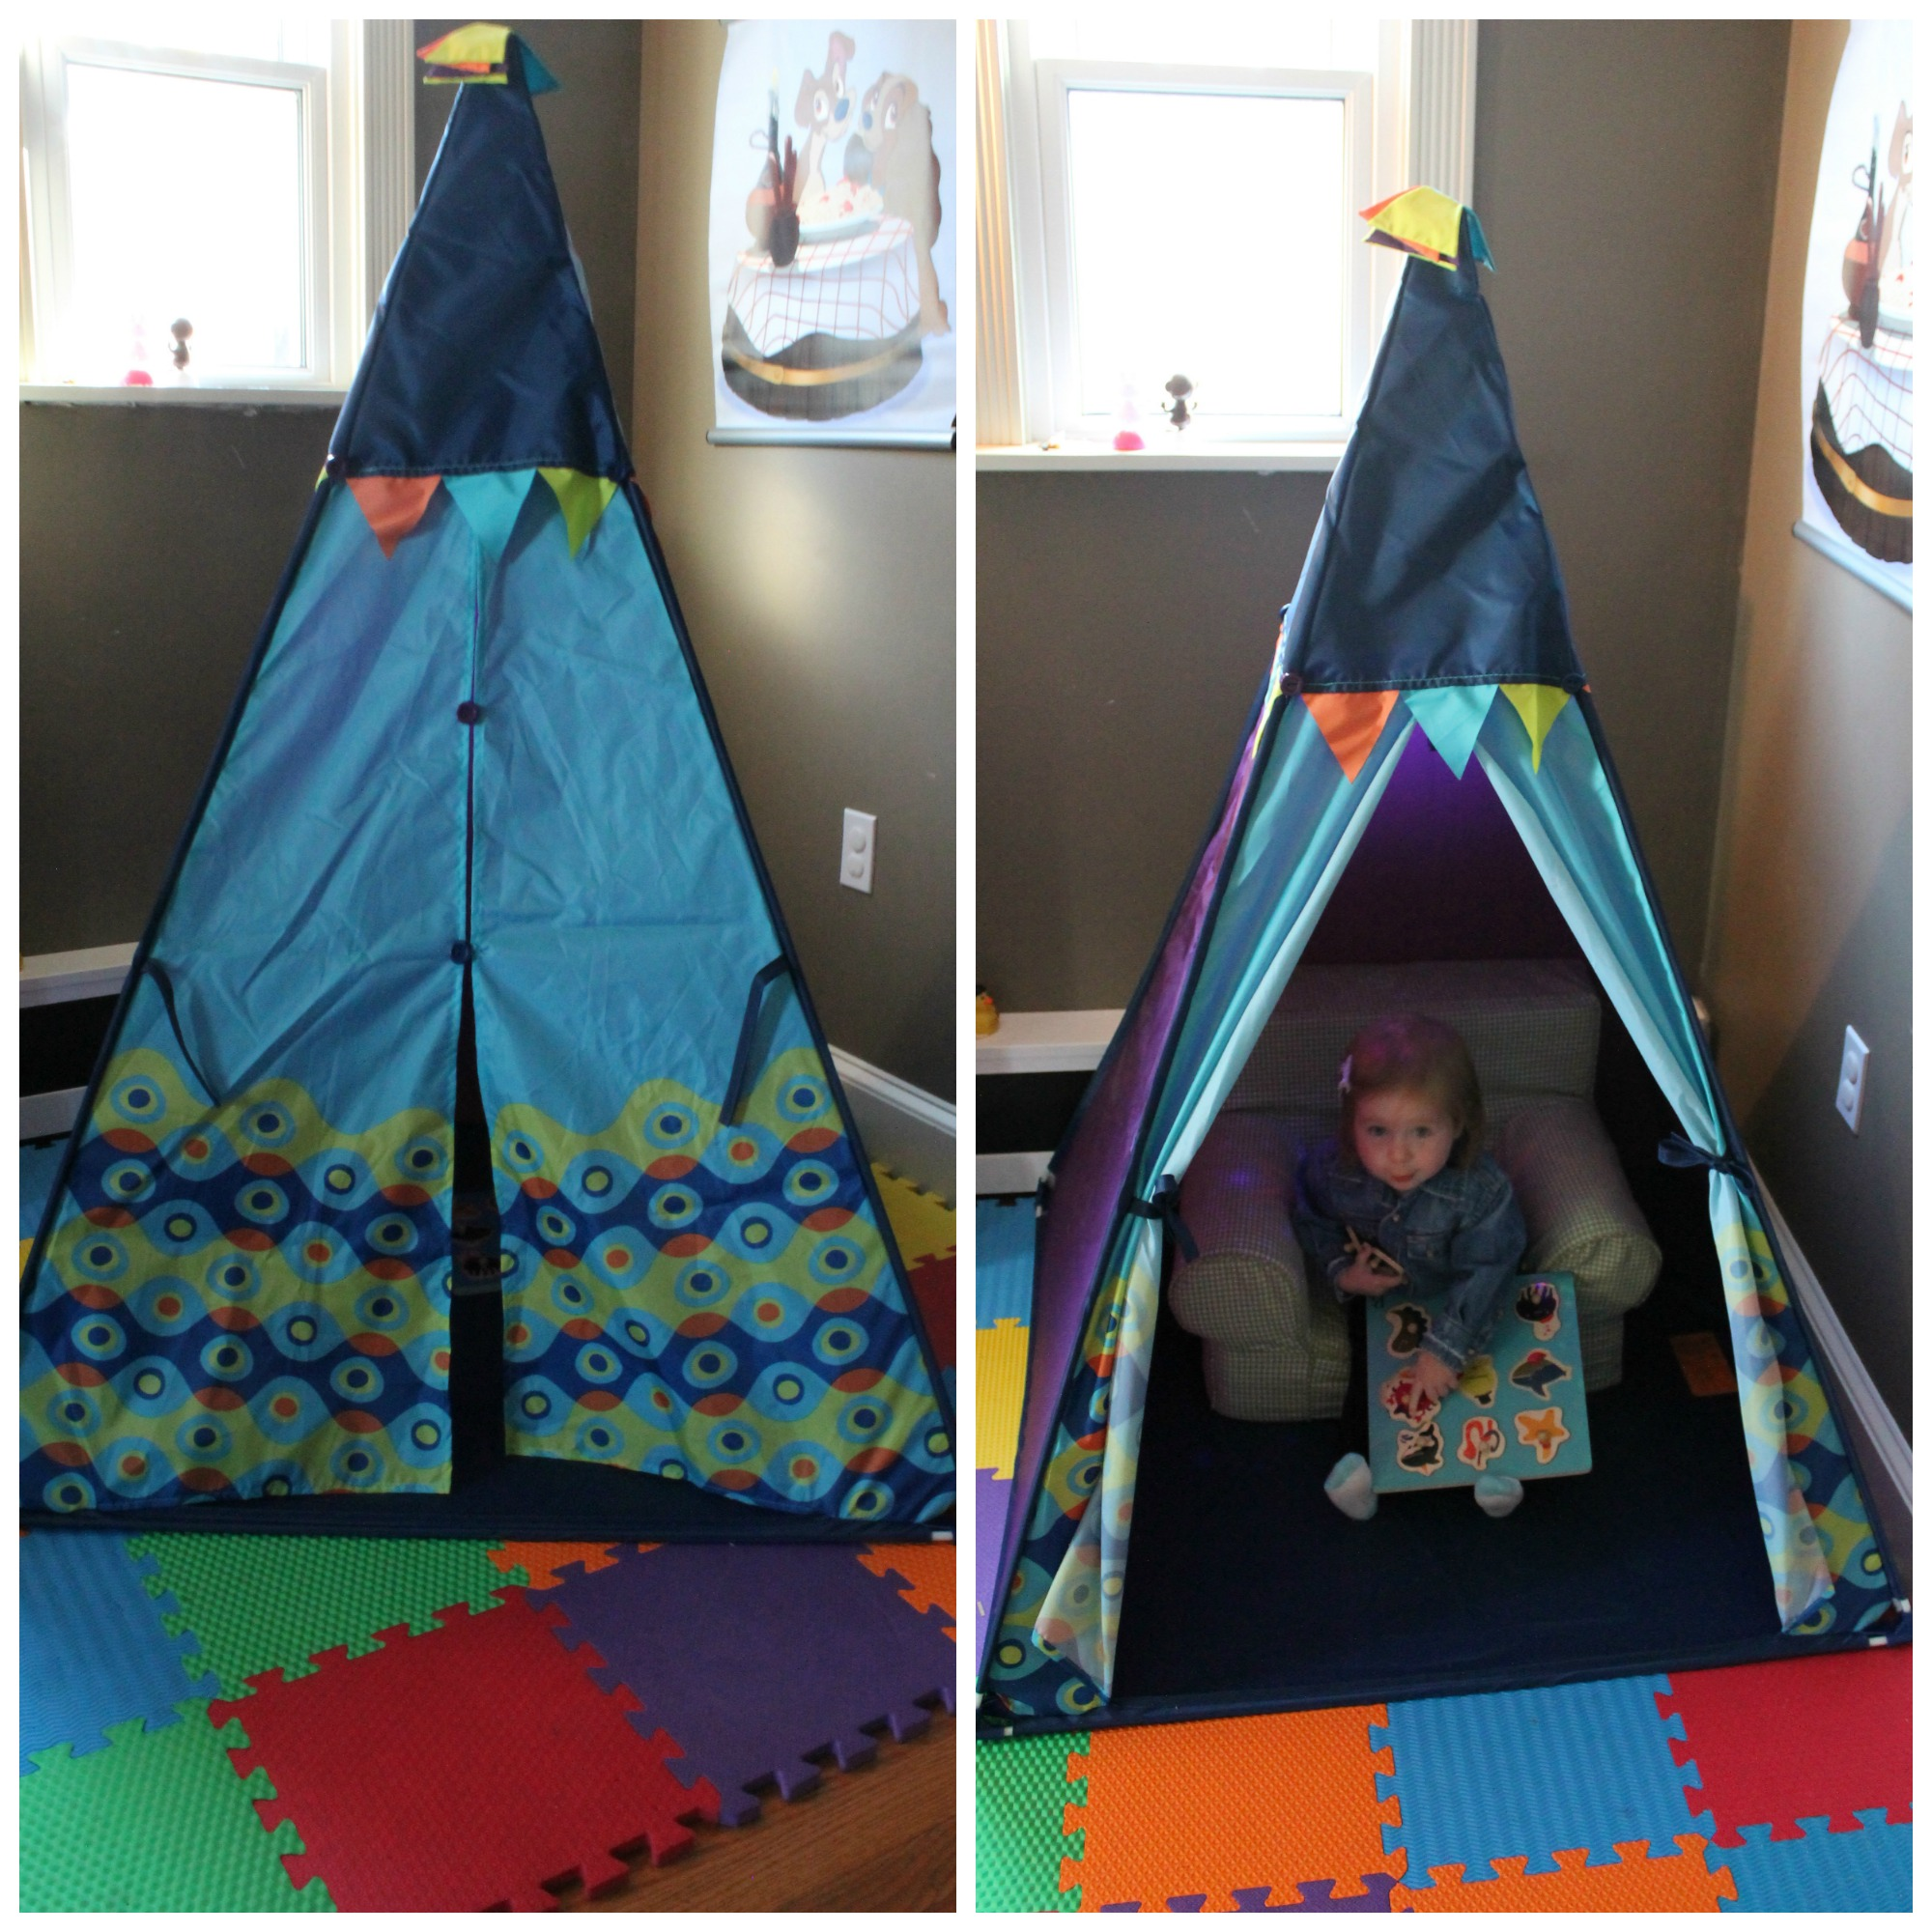 As soon as she saw it Avery ran right inside! The B.Teepee ...  sc 1 st  sweet lil you & Just B. You! B. Teepee u0026 Puzzle Review! - sweet lil you